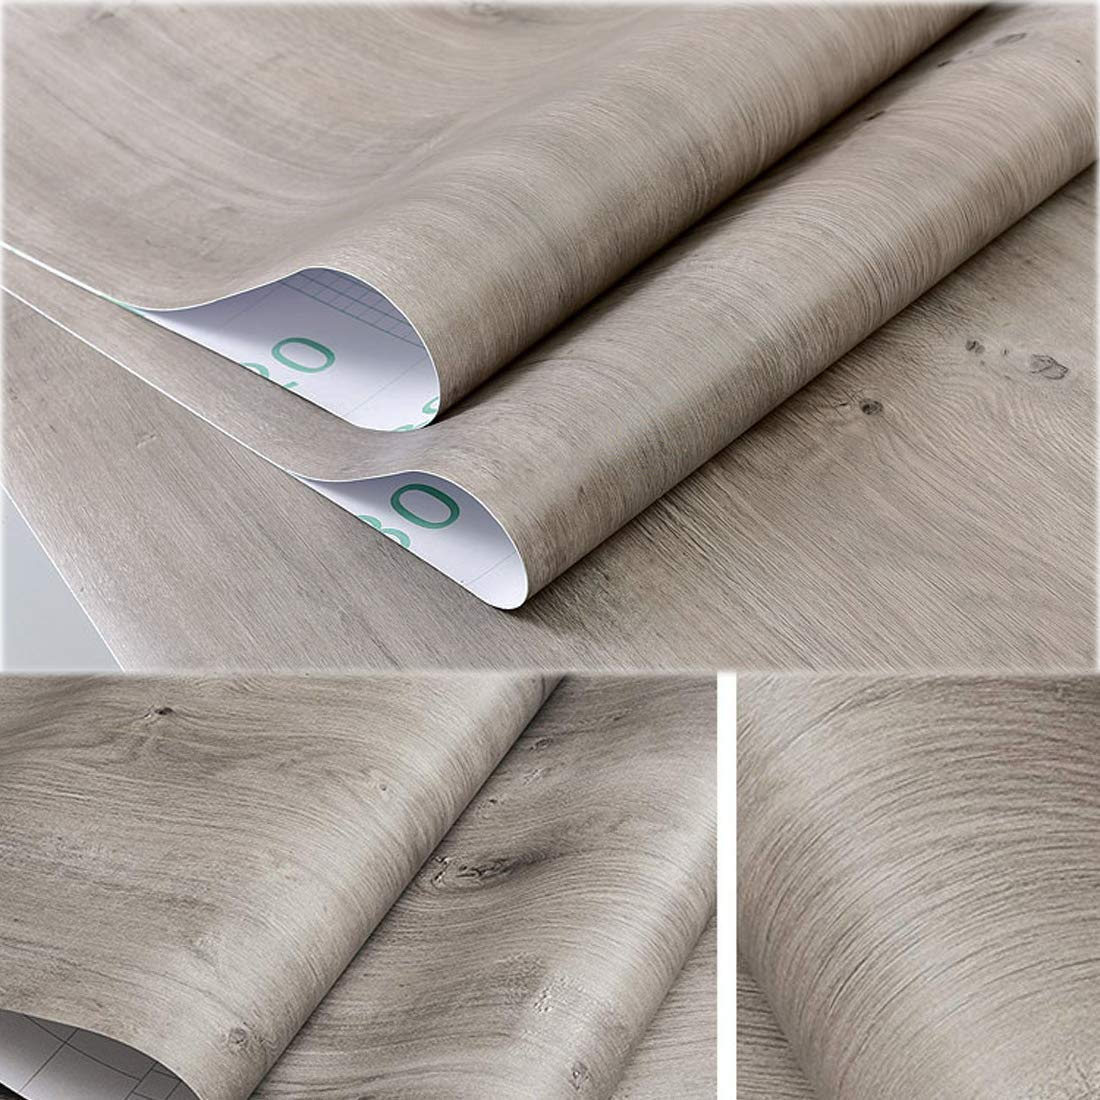 Decorative Gray Oak Wood Contact Paper Vinyl Self Adhesive Shelf Drawer Liner for Bathroom Kitchen Cabinets Shelves Table Arts and Crafts Decal 24x117 Inches Glow4u GL001